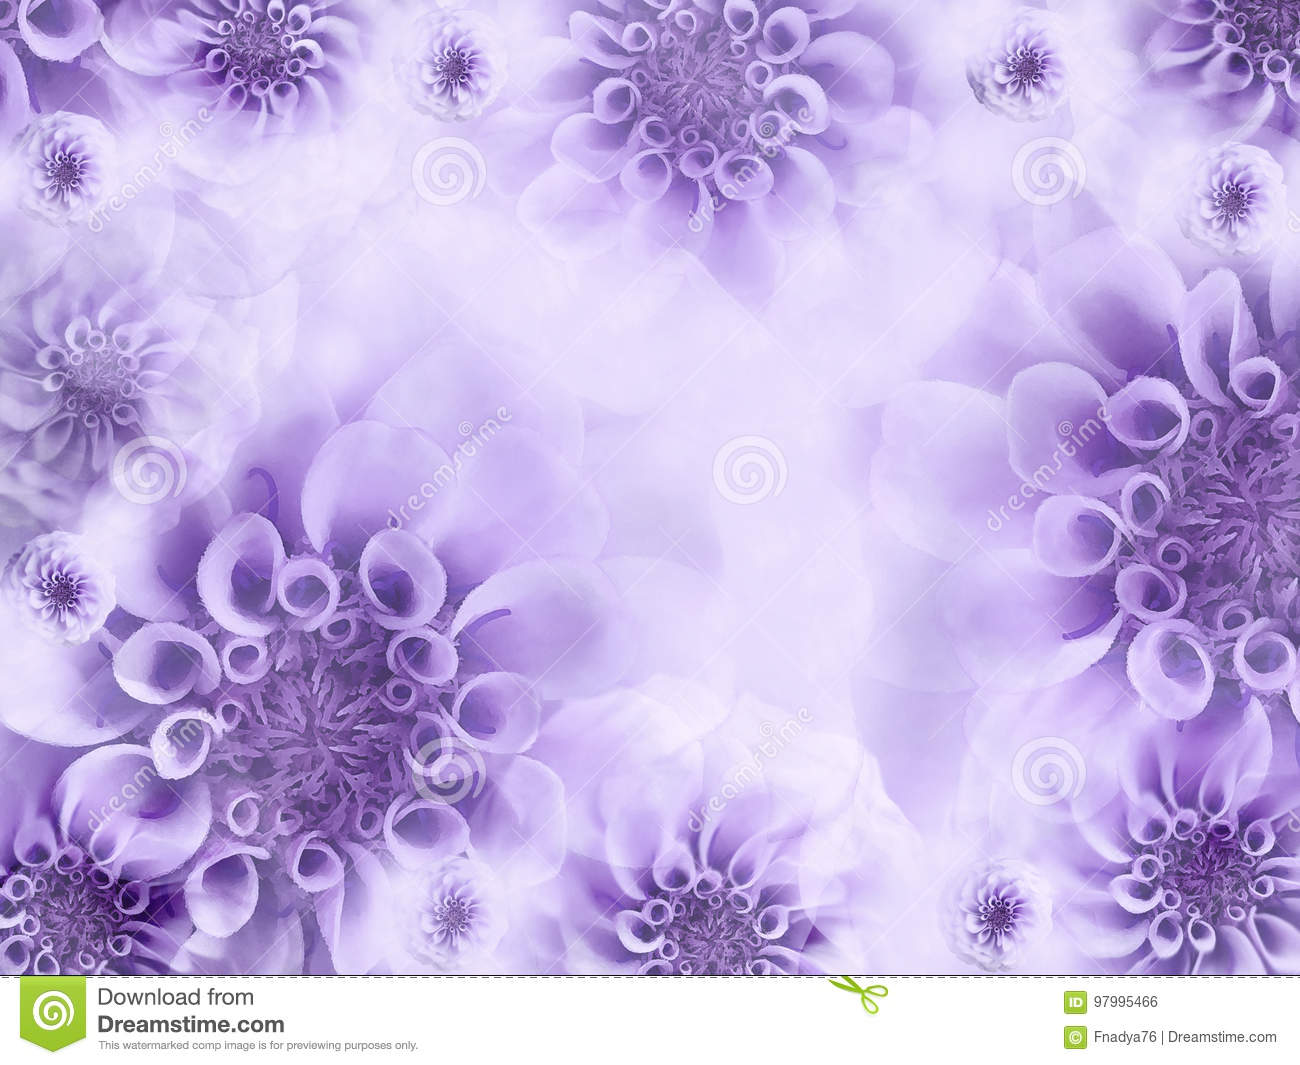 floral white-violet beautiful background. wallpapers of light purple